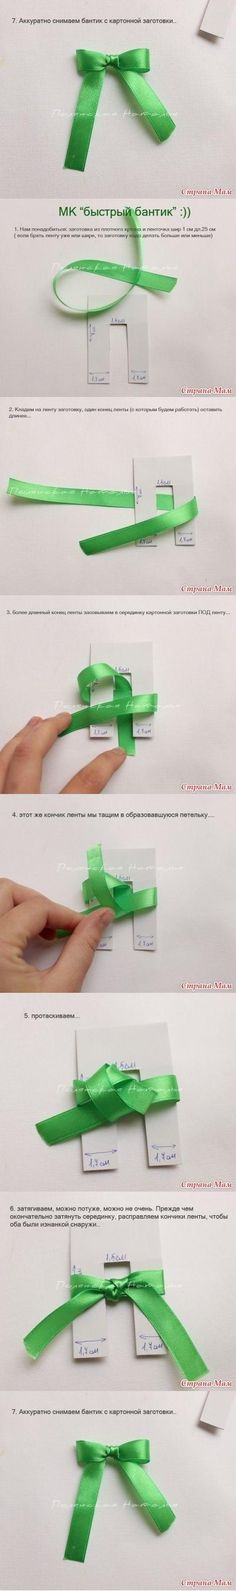 DIY Easy Ribbon Bow DIY Projects | UsefulDIY.com Follow Us on Facebook ==> http://www.facebook.com/UsefulDiy